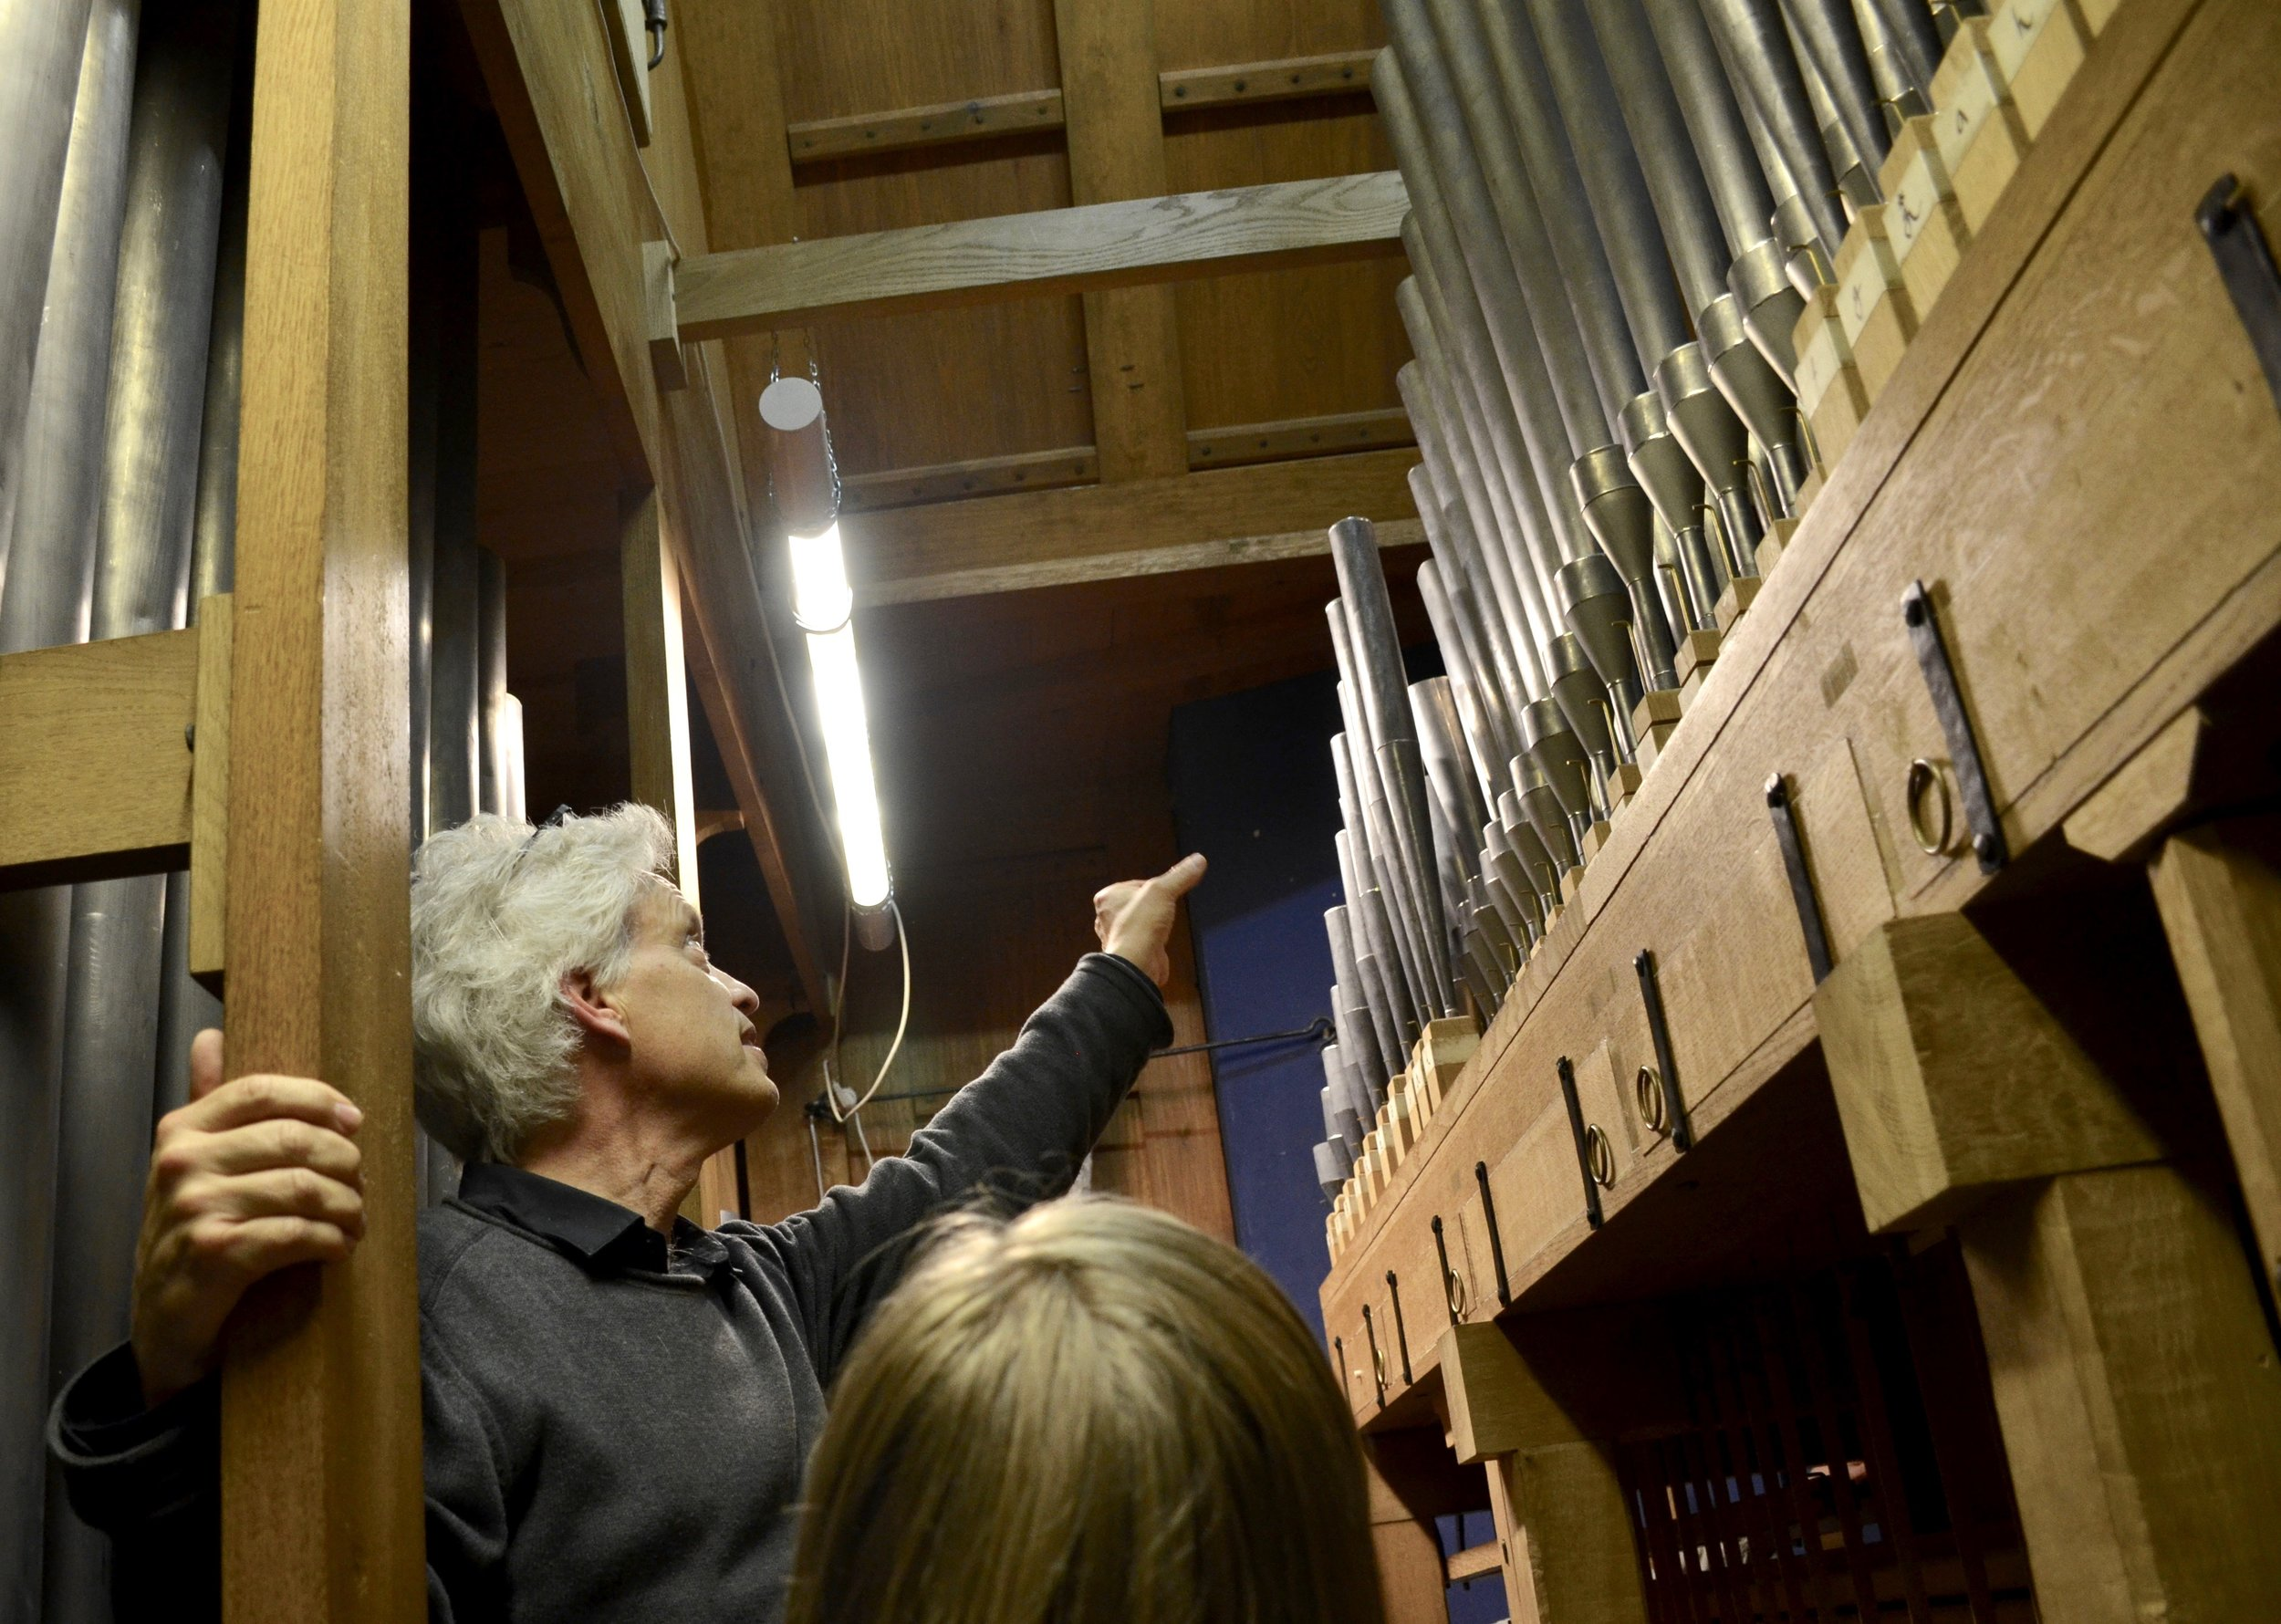 Hans Davidsson points out features of the North German Baroque organ in Göteborg.